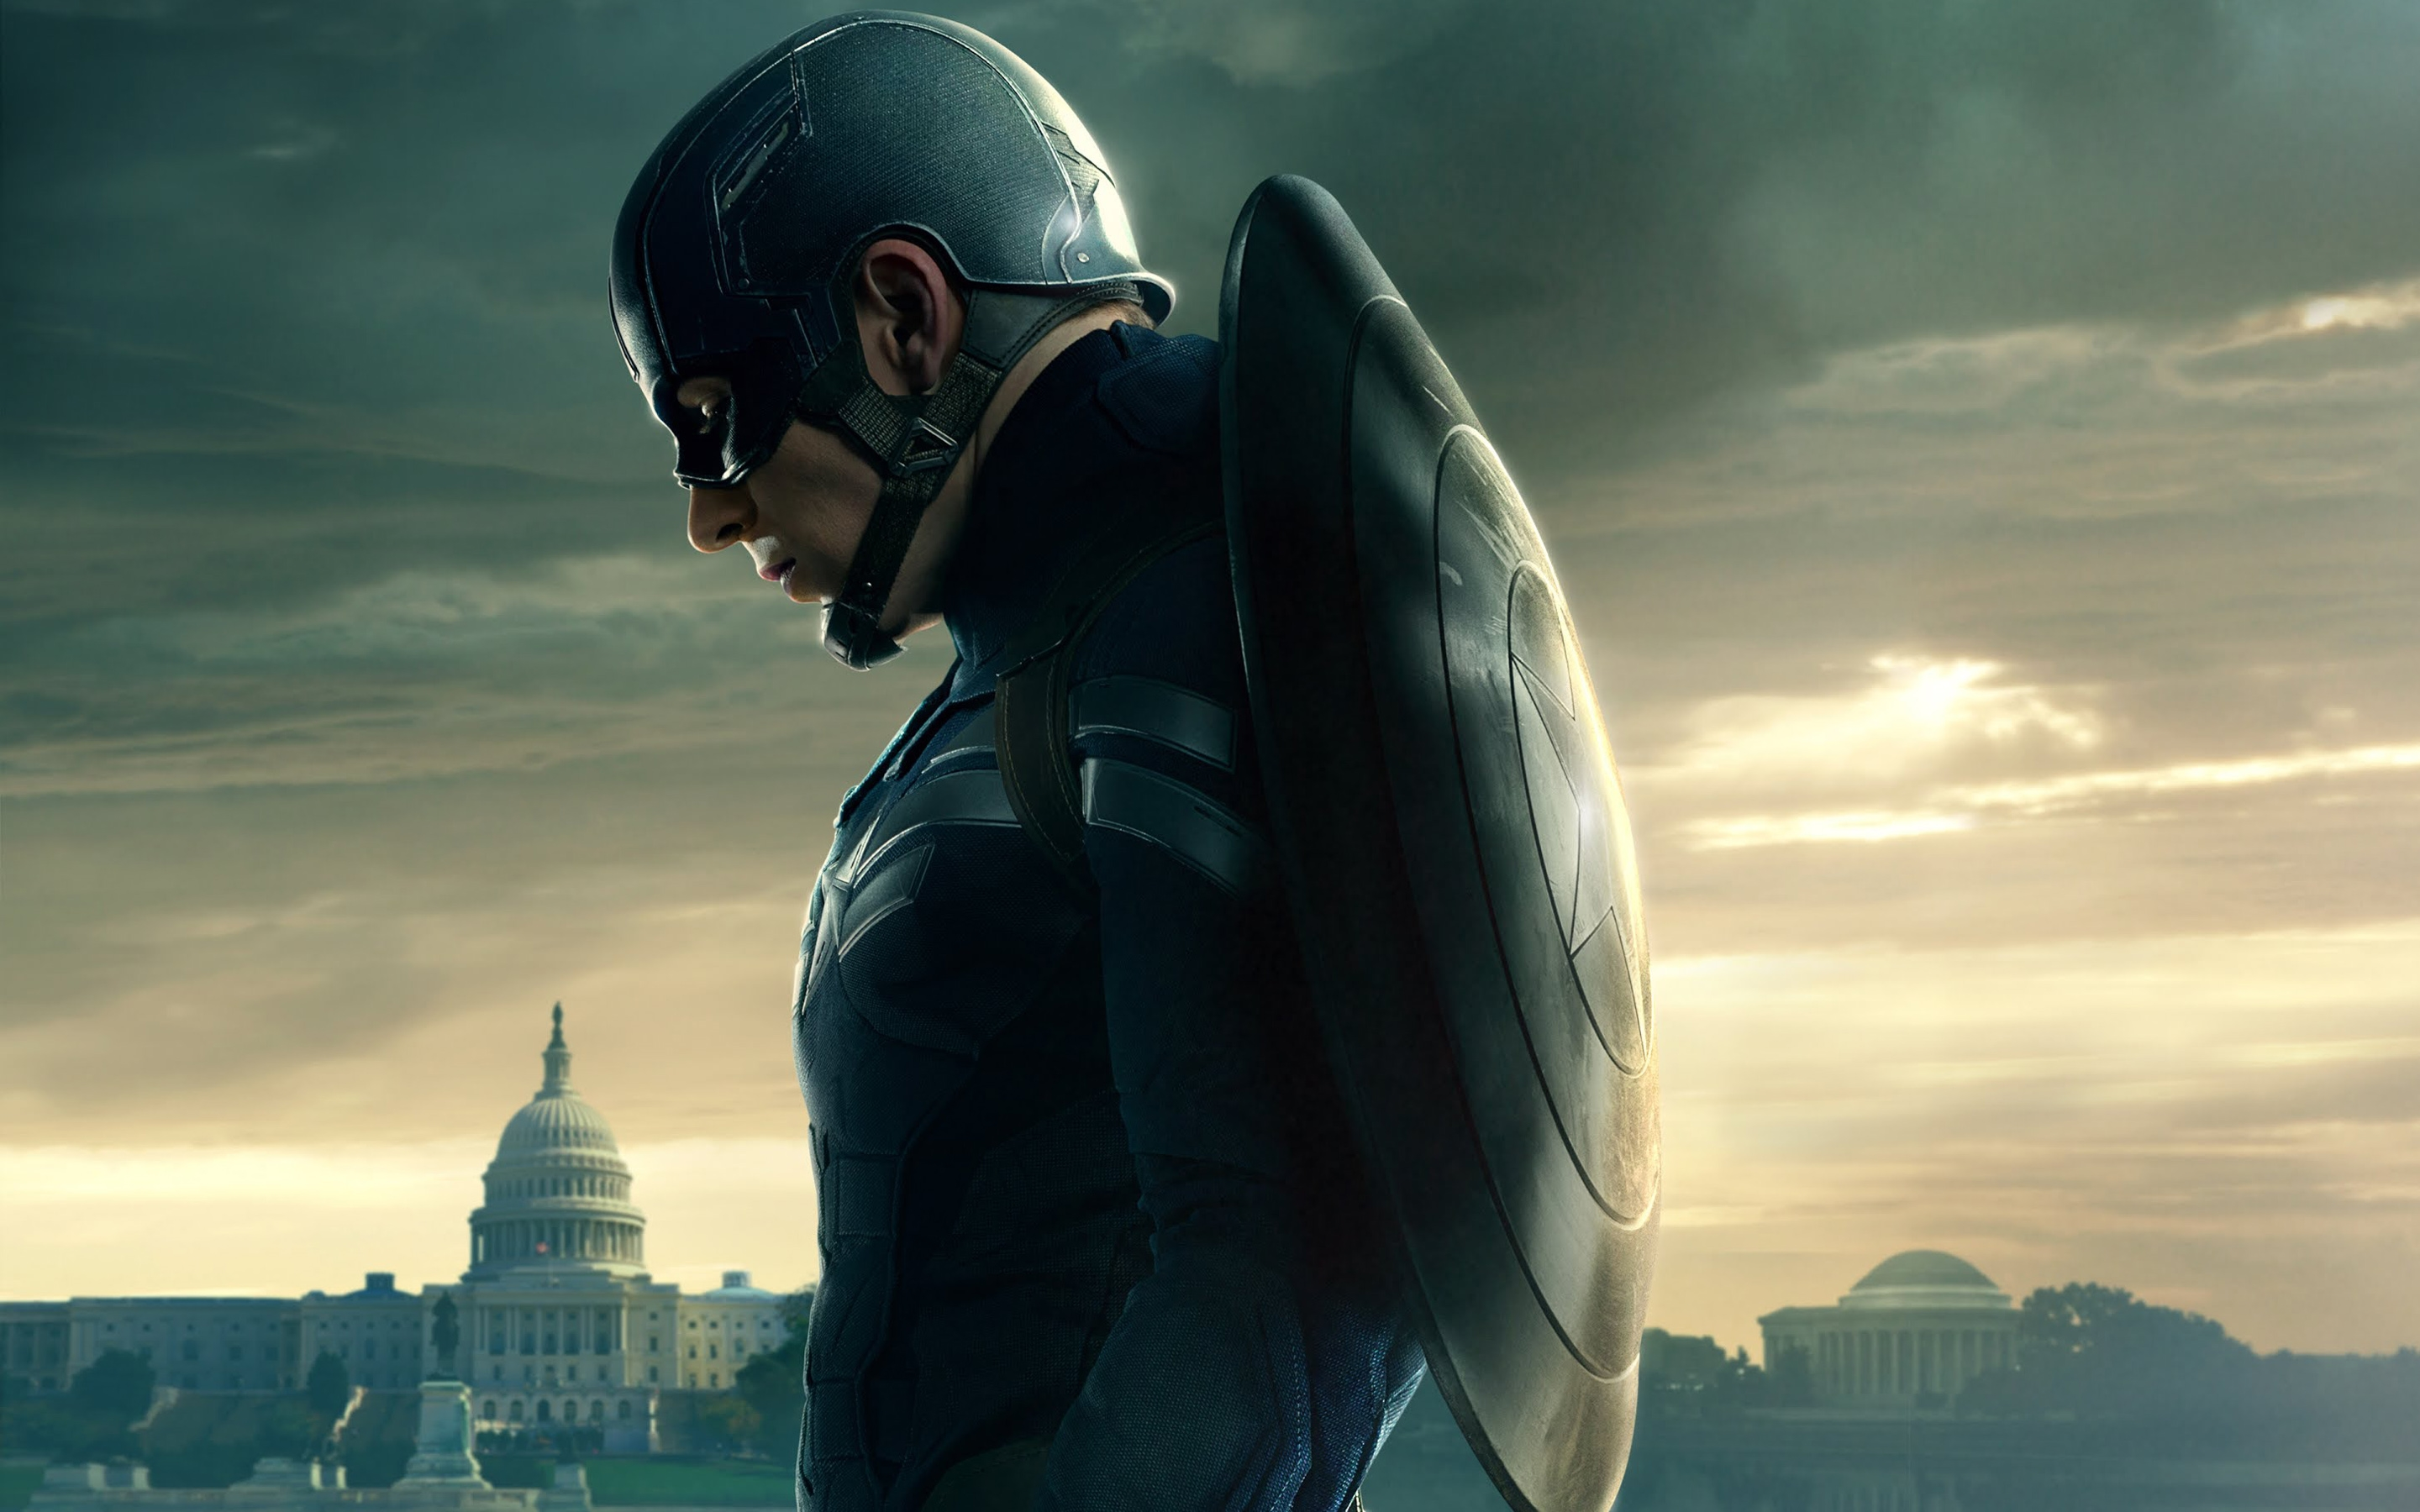 Captain-America-The-First-Avenger-HD-desktop-wallpaper-wpc5803222